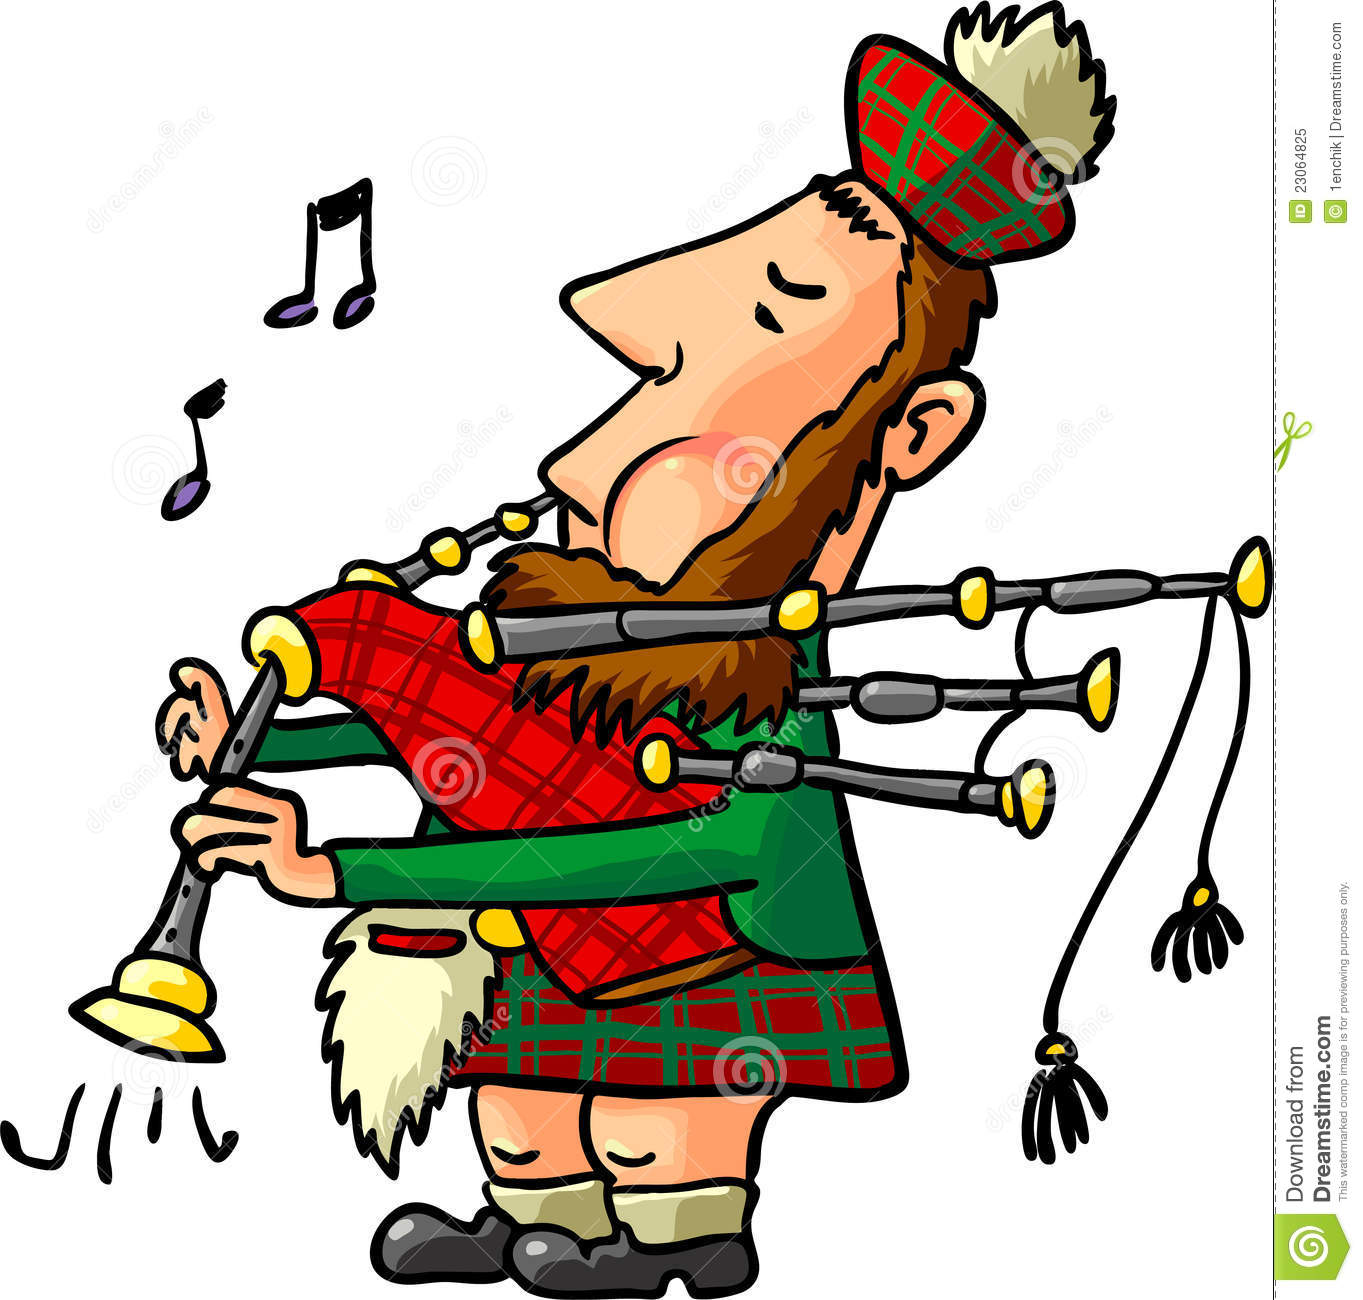 Scottish Bagpiper Royalty Free Stock Photo - Image: 23064825